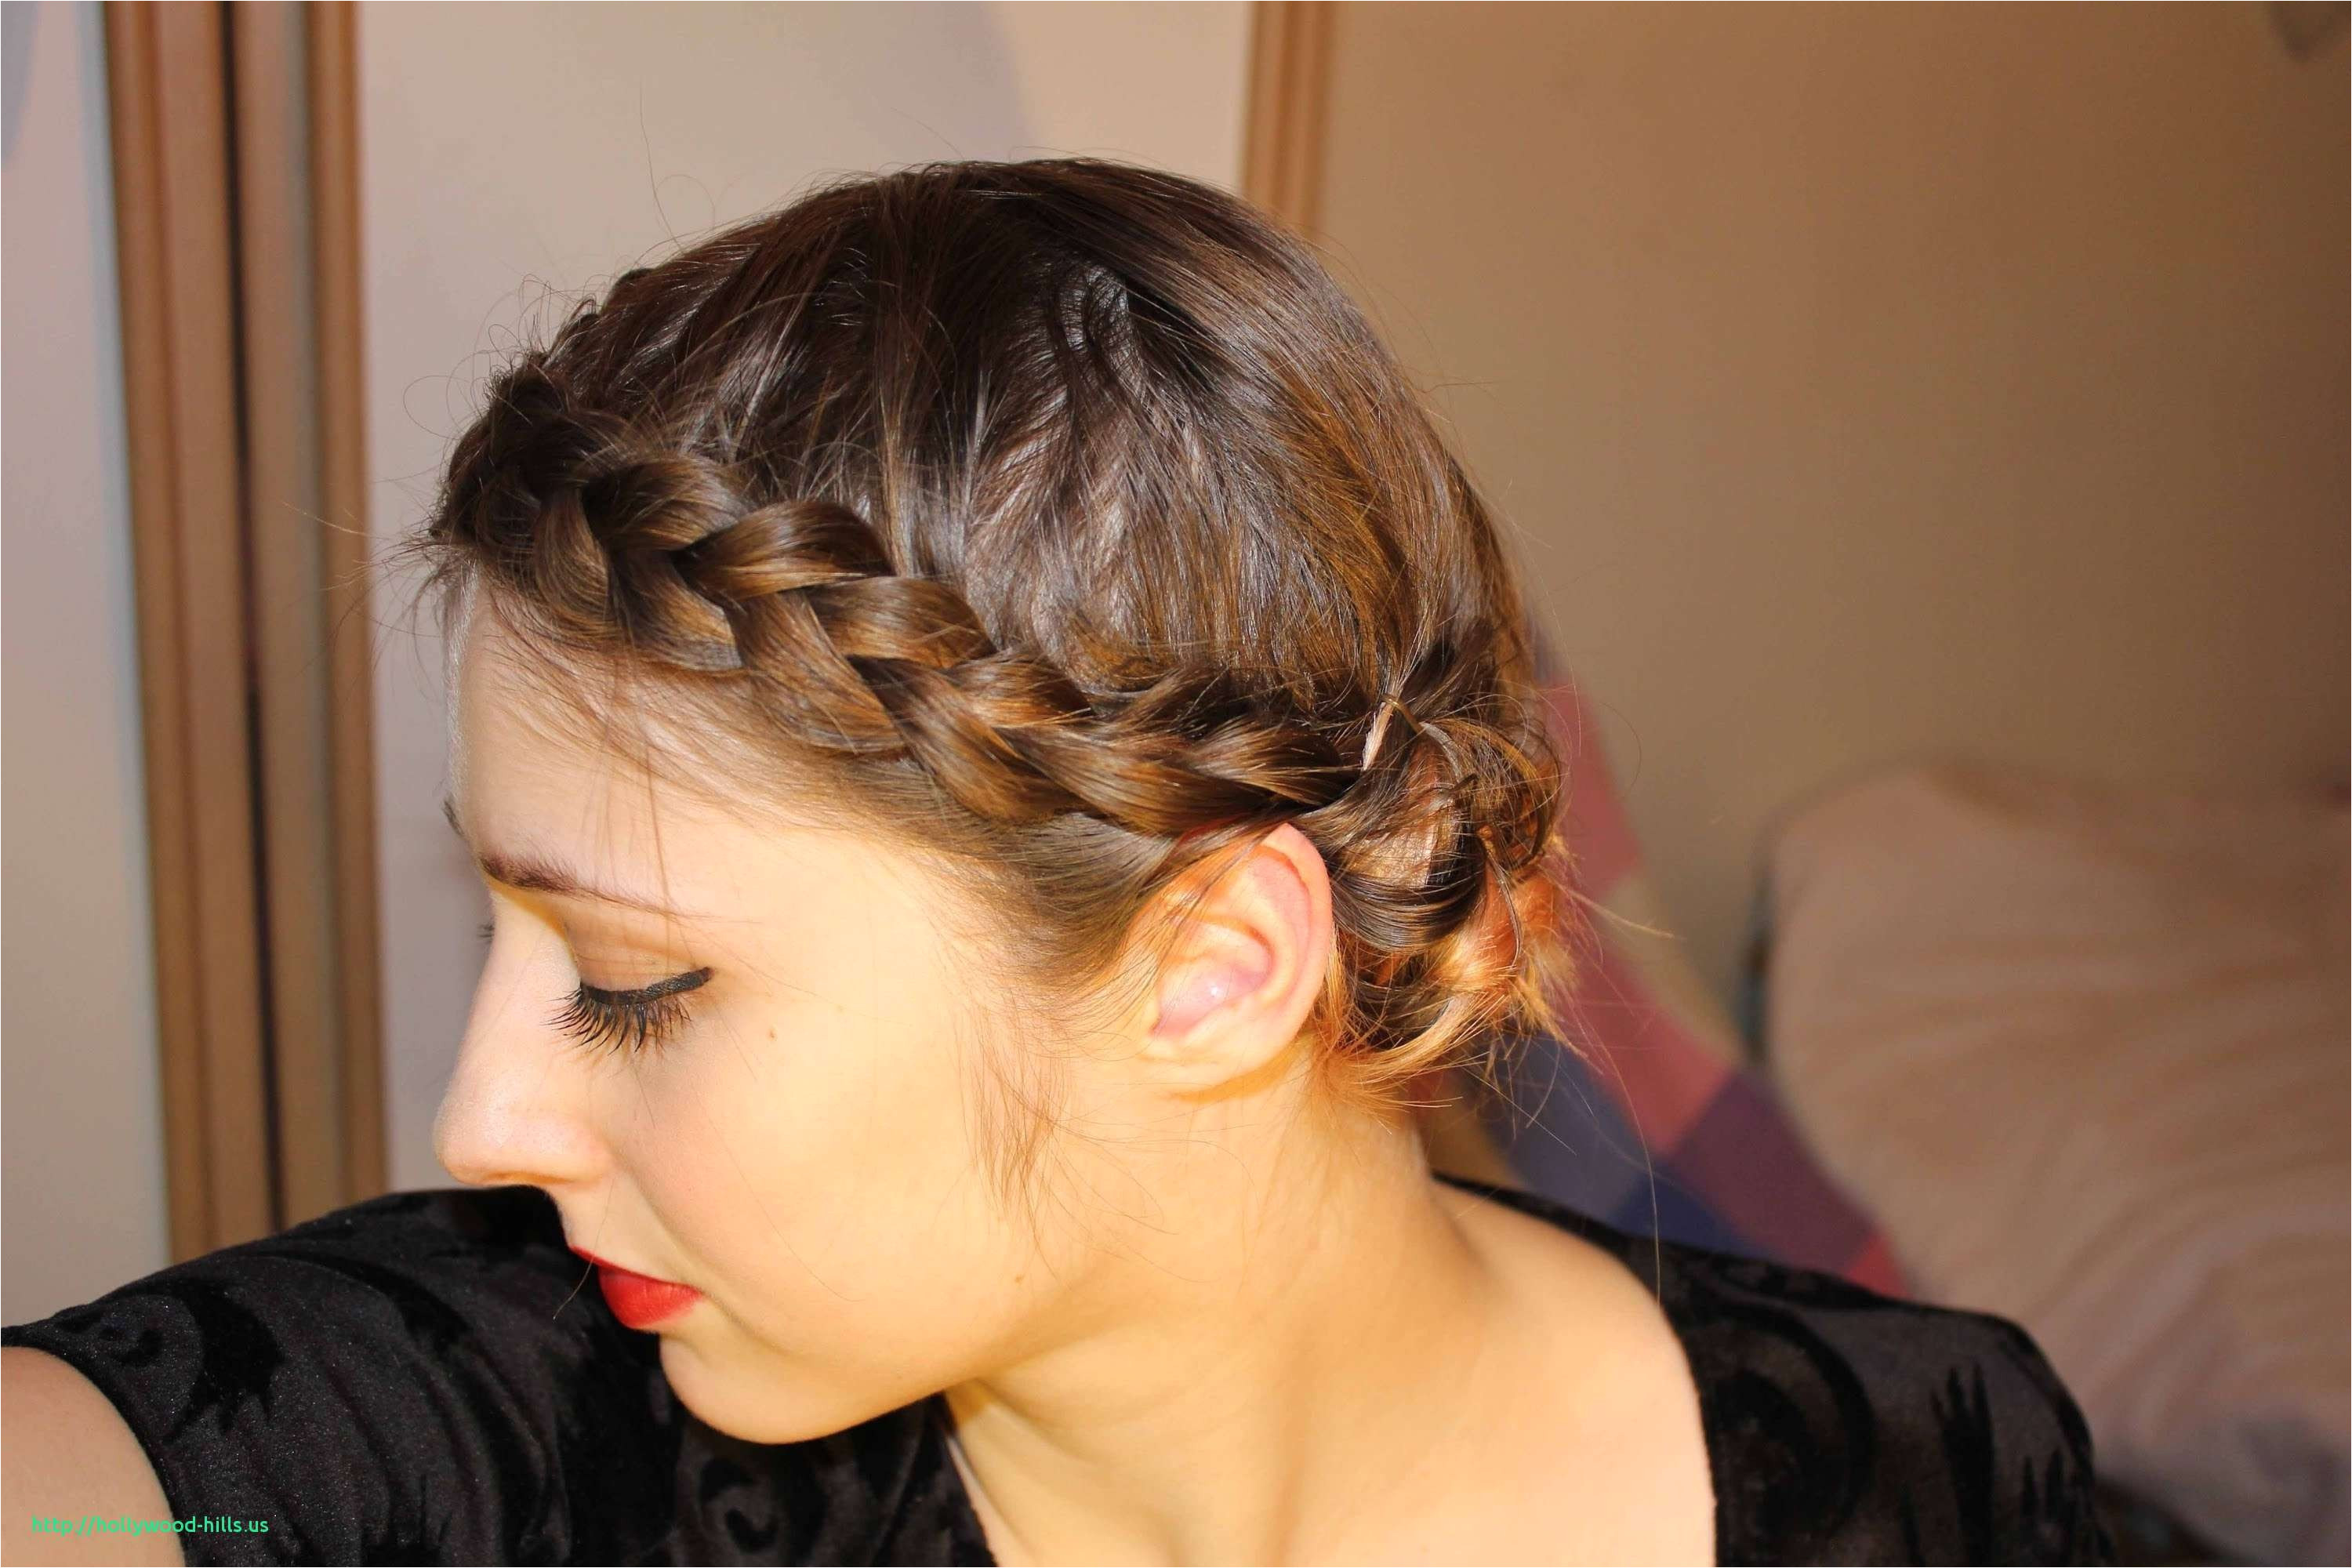 Hairstyles for Cute Girl On Dailymotion Girl Hairstyles for School Elegant Lovely Beautiful Girl